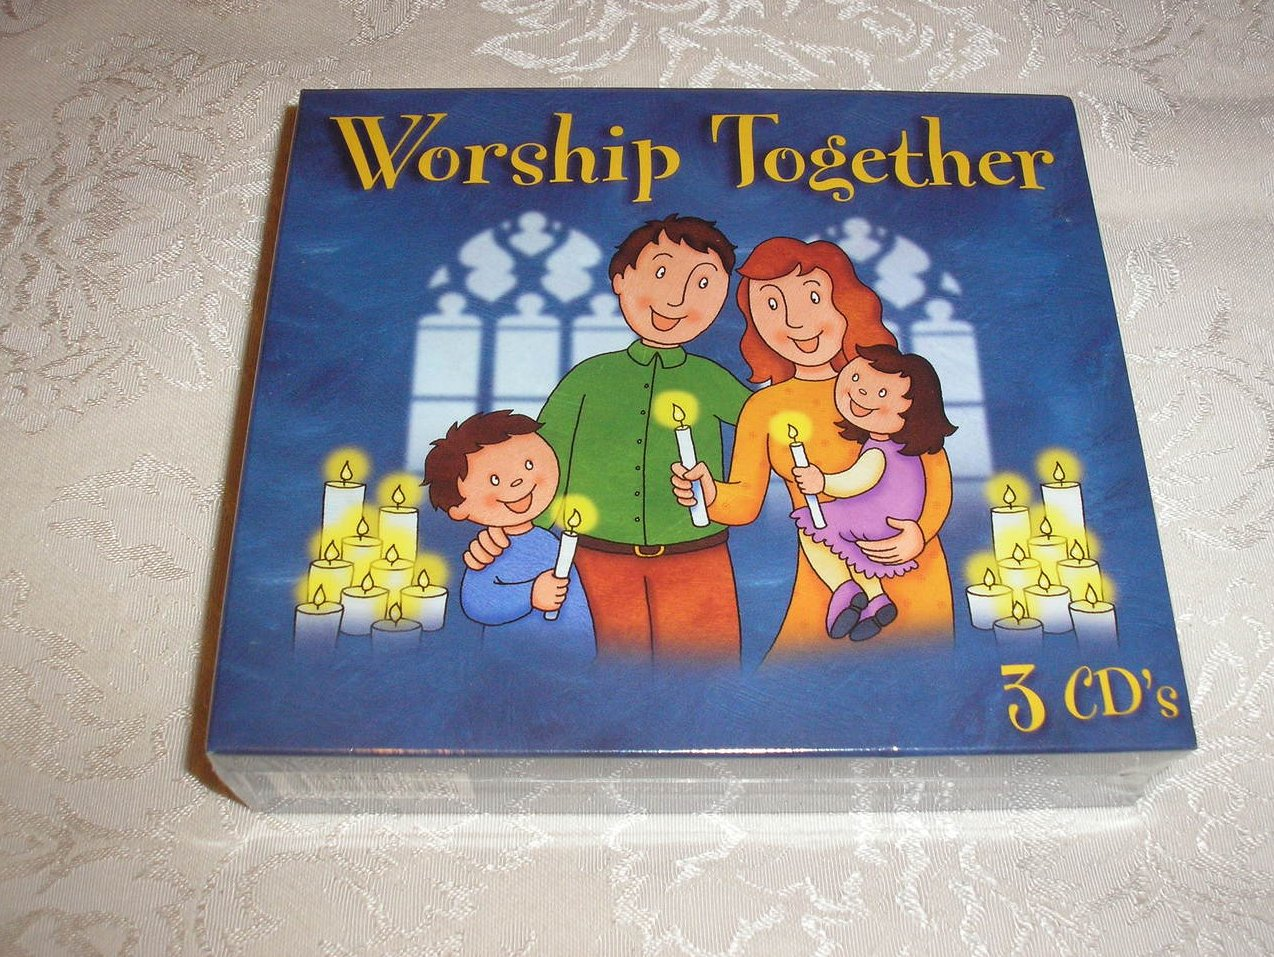 Kidzup Worship Together Brand New Sealed Set of 3 CDs